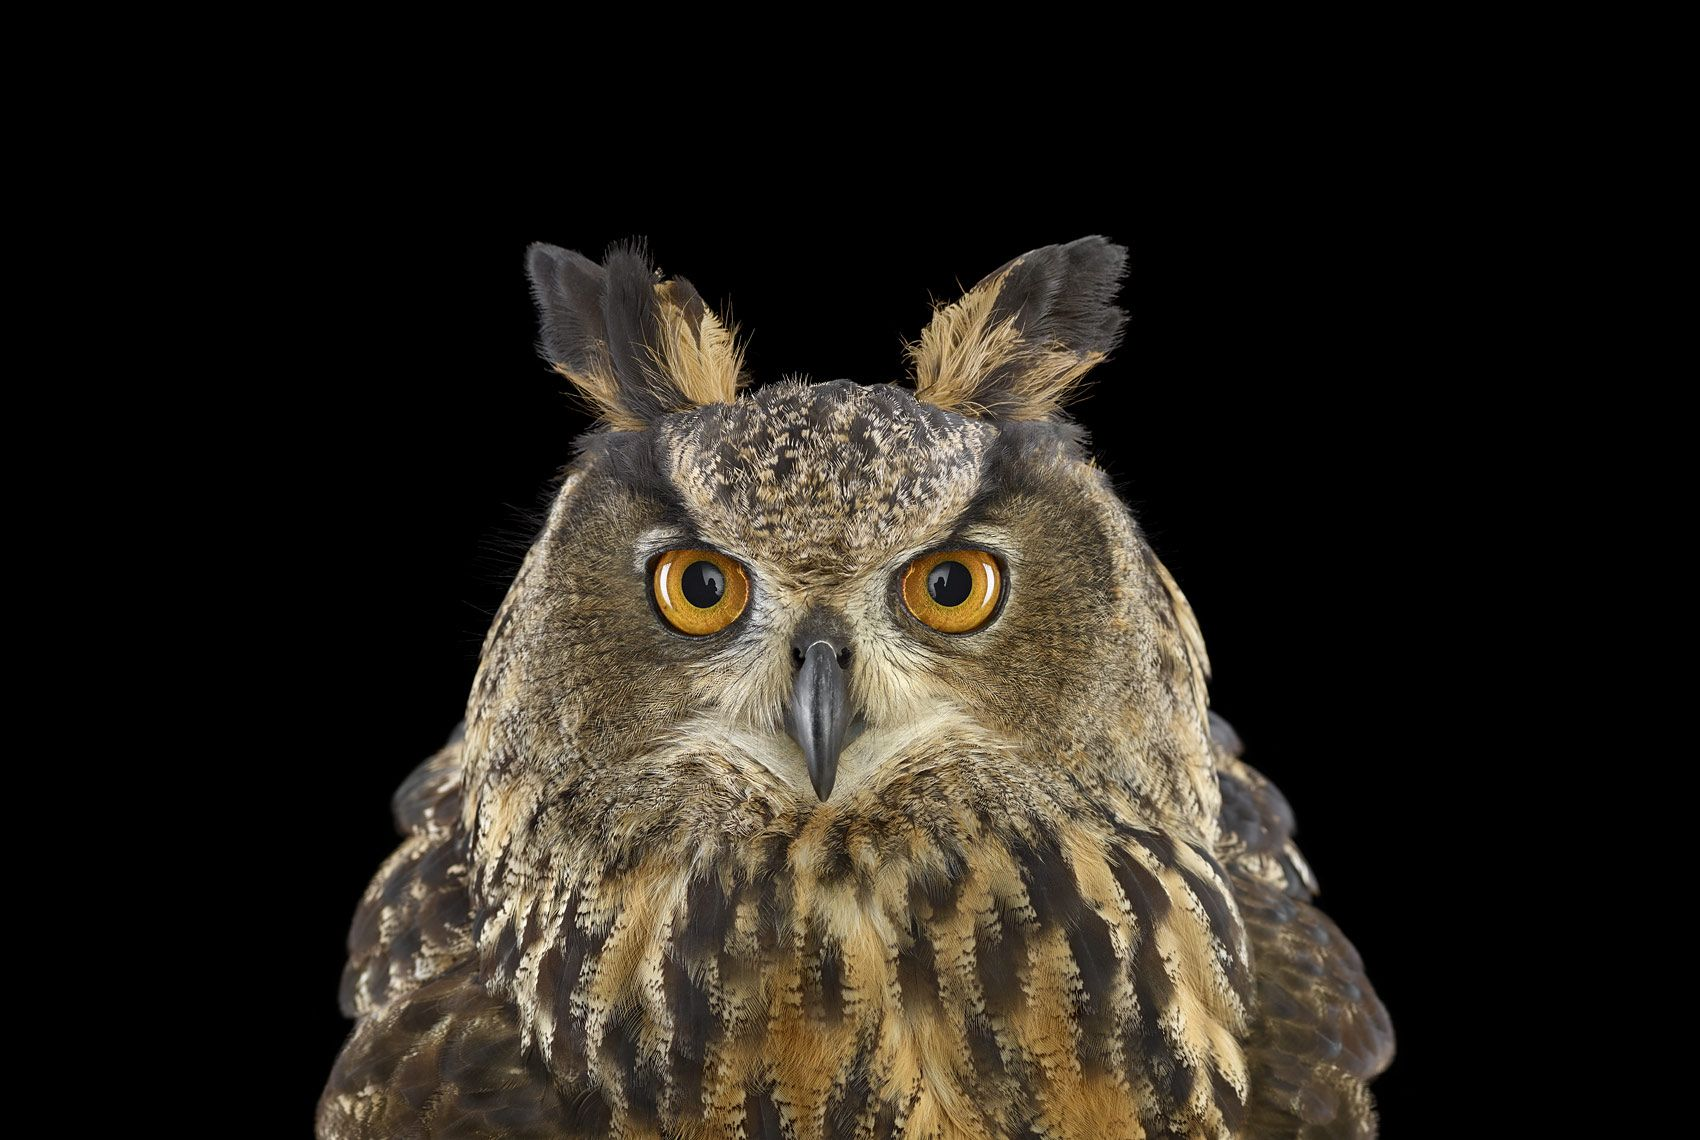 Eurasian Eagle Owl #1, St Louis, MO, 2012,Brad Wilson,Photographie contemporaine